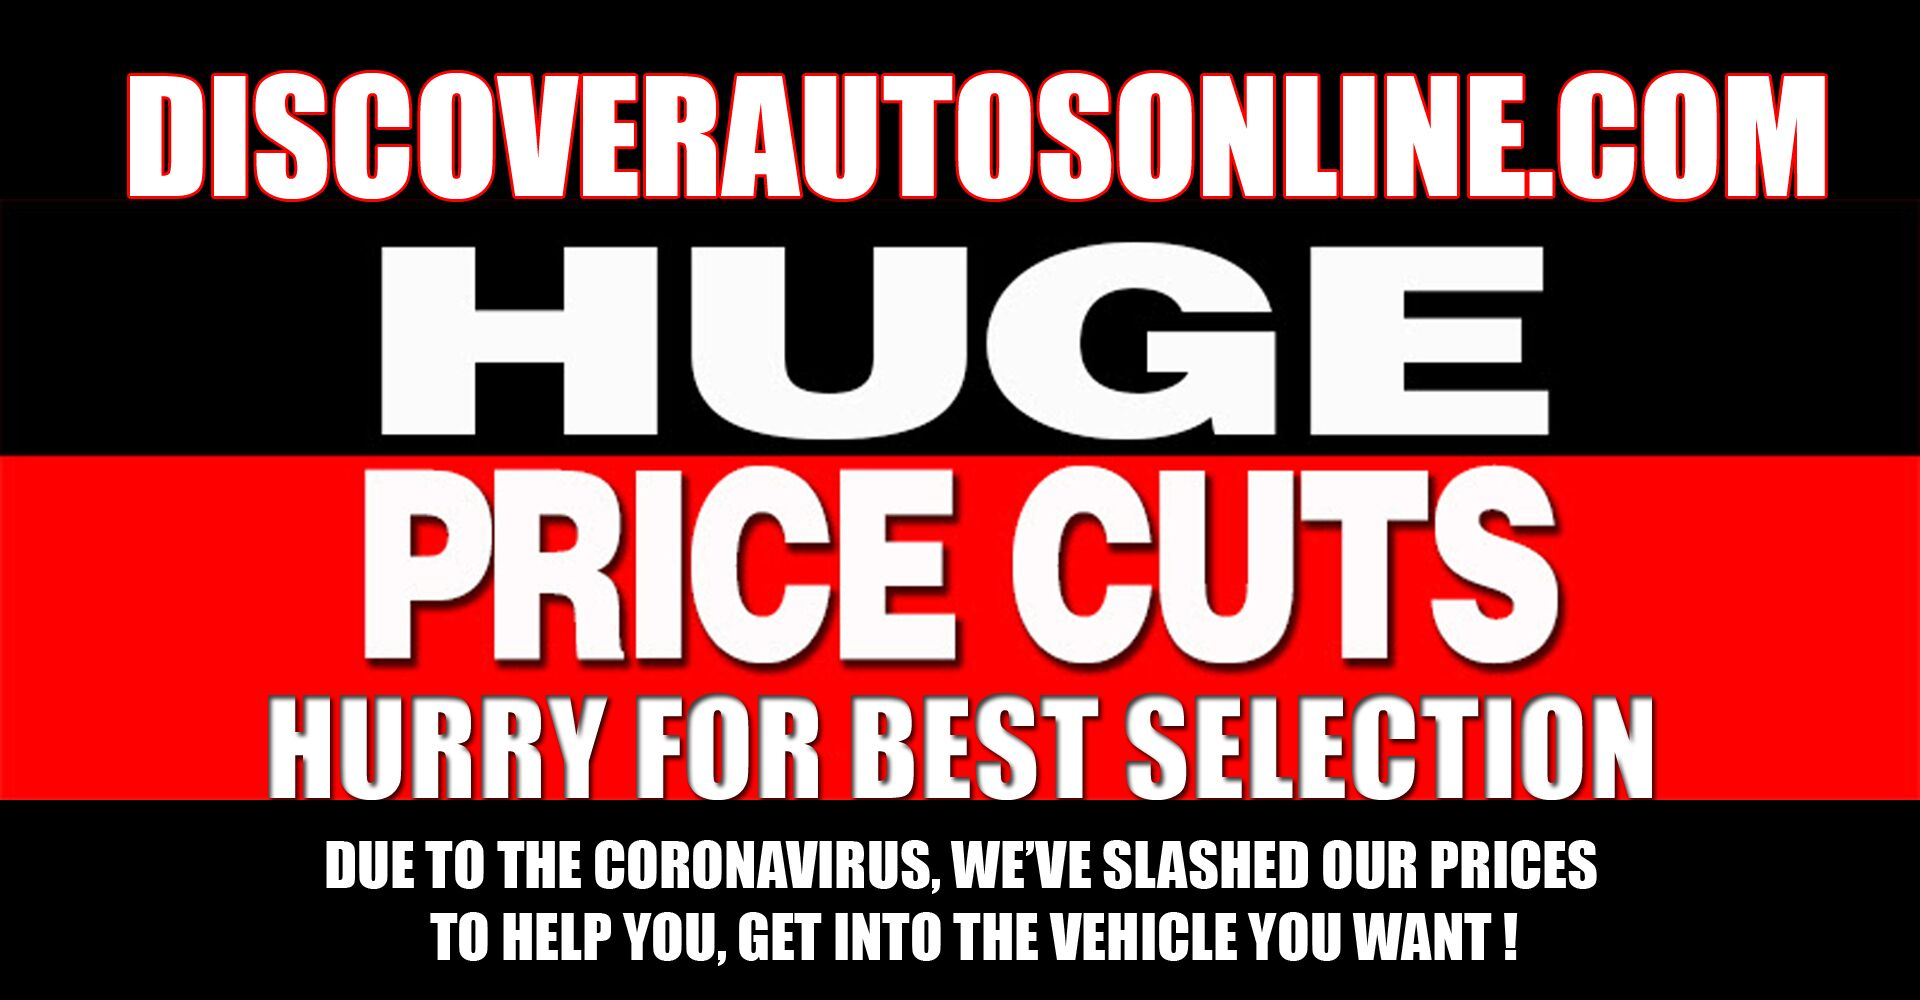 HUGE PRICE CUTS